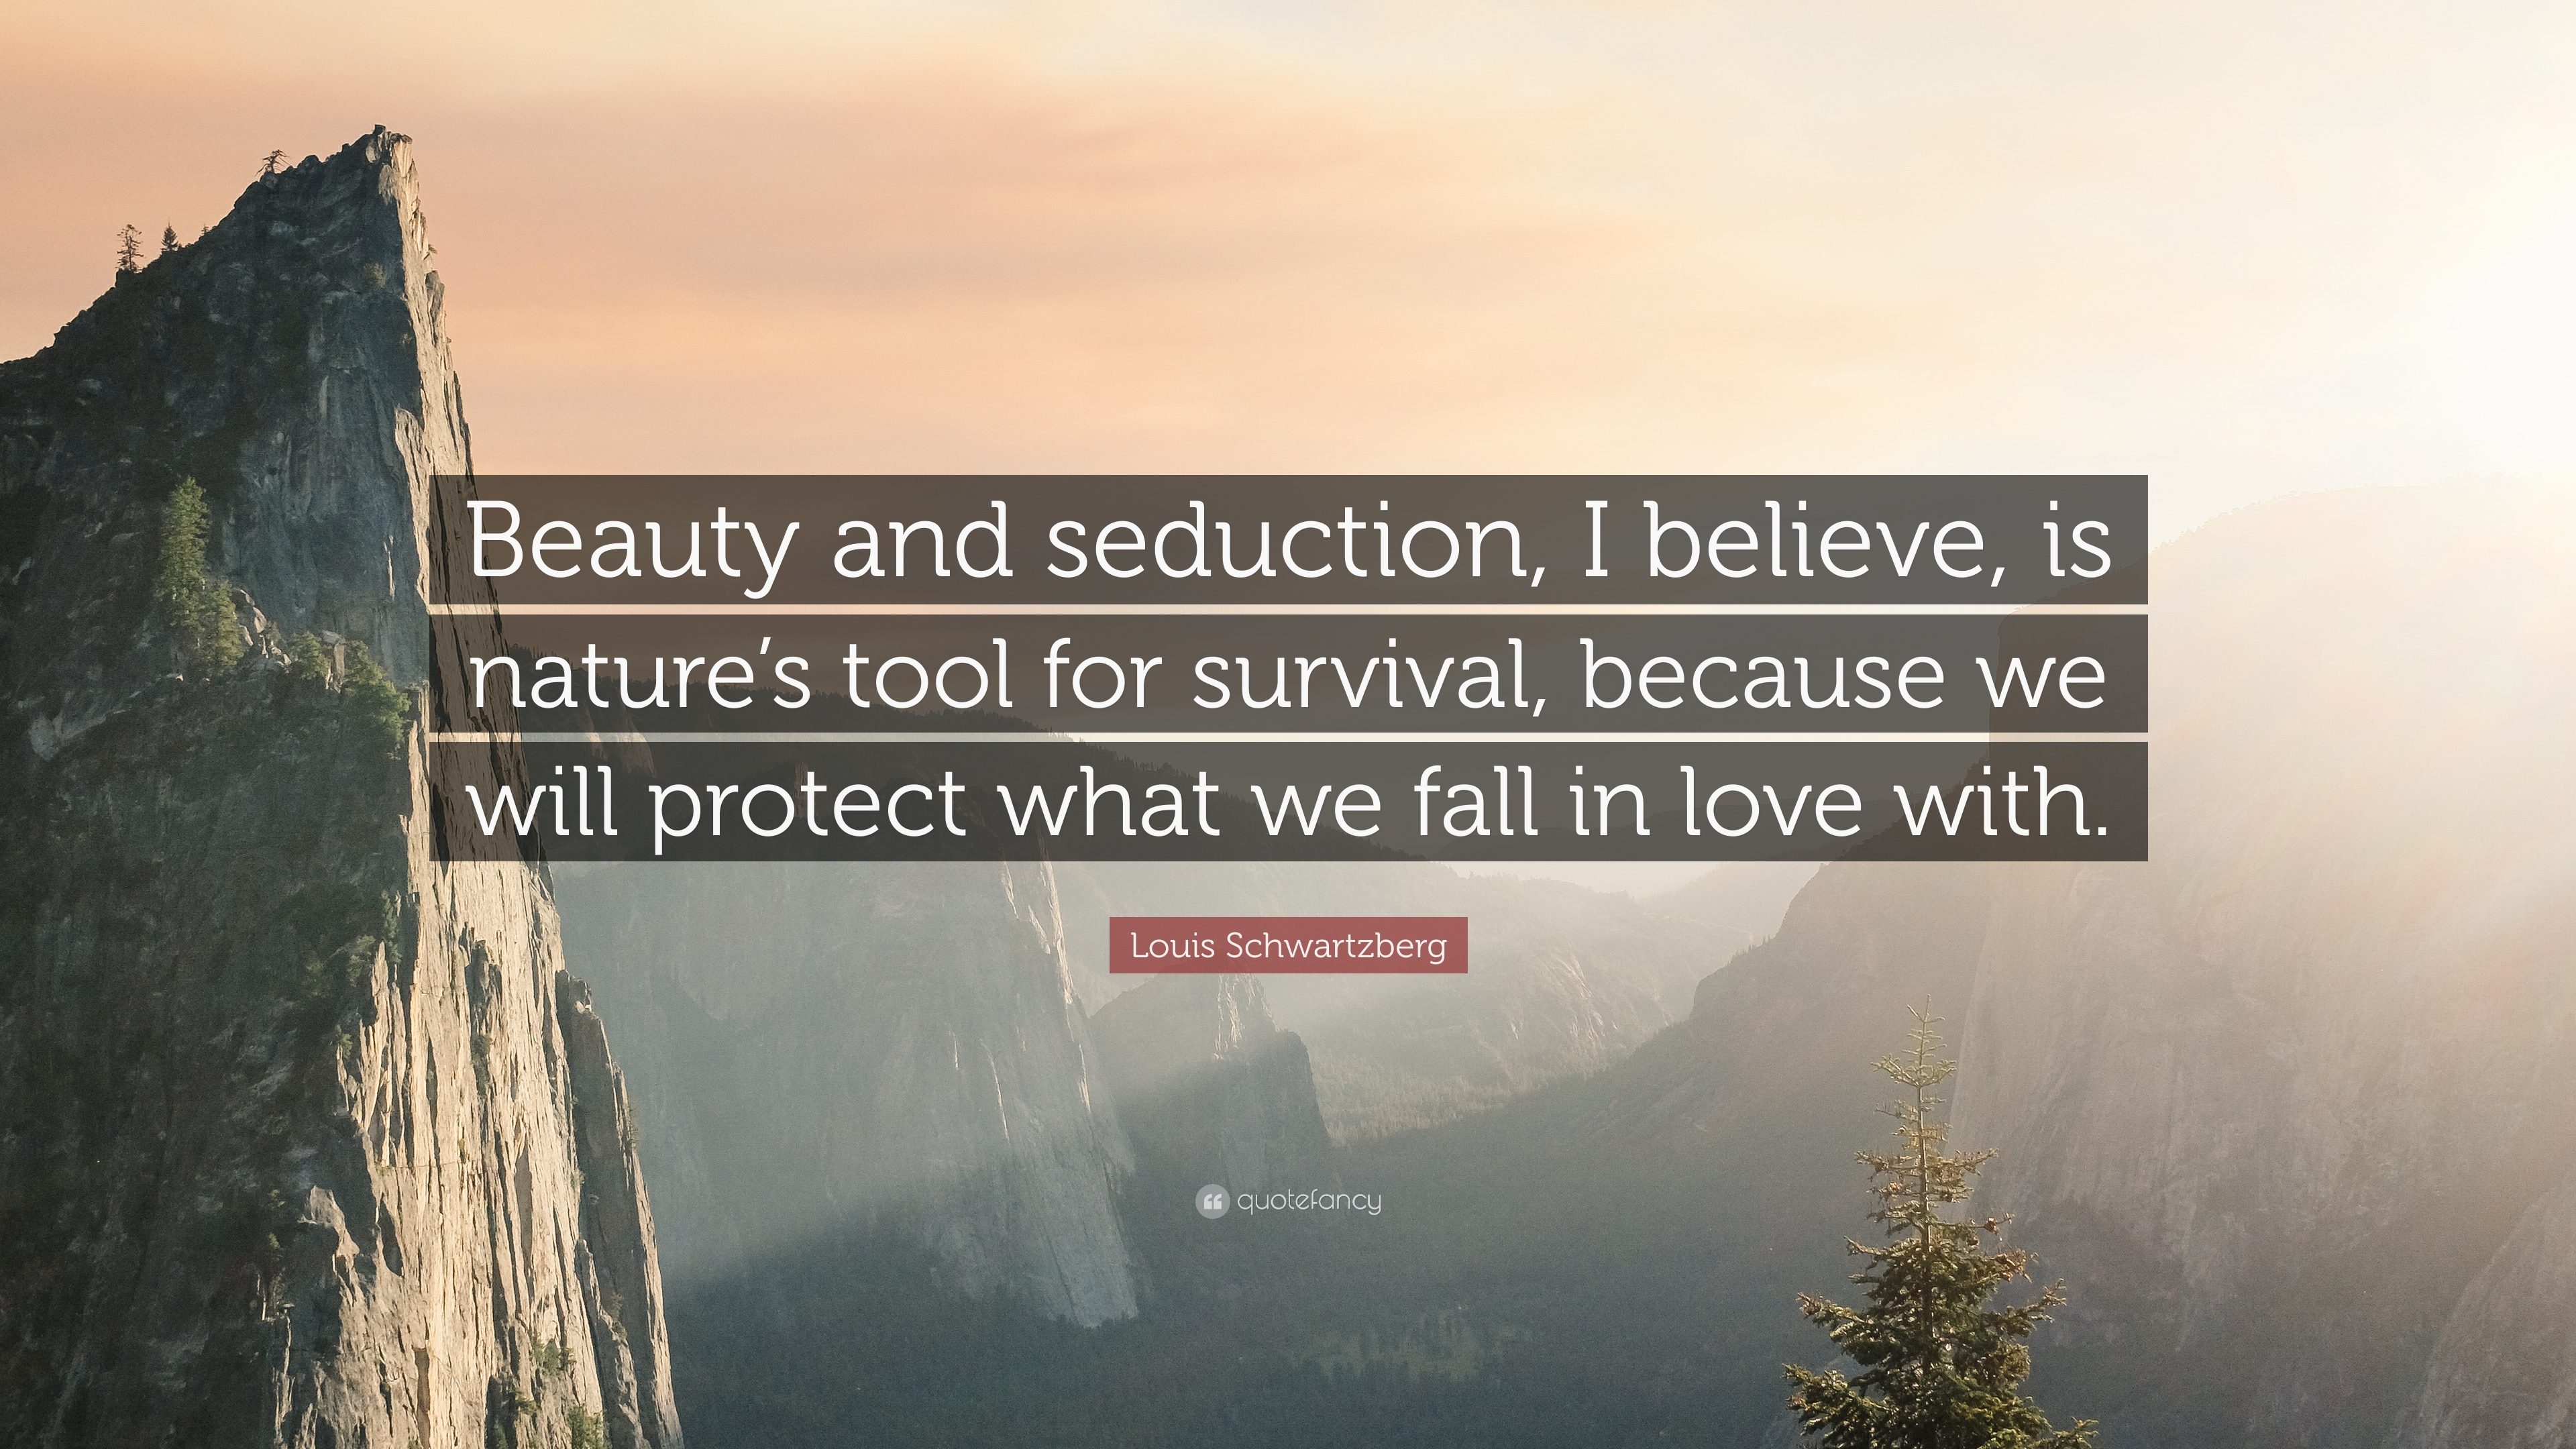 Louis Schwartzberg Quote Beauty And Seduction I Believe Is